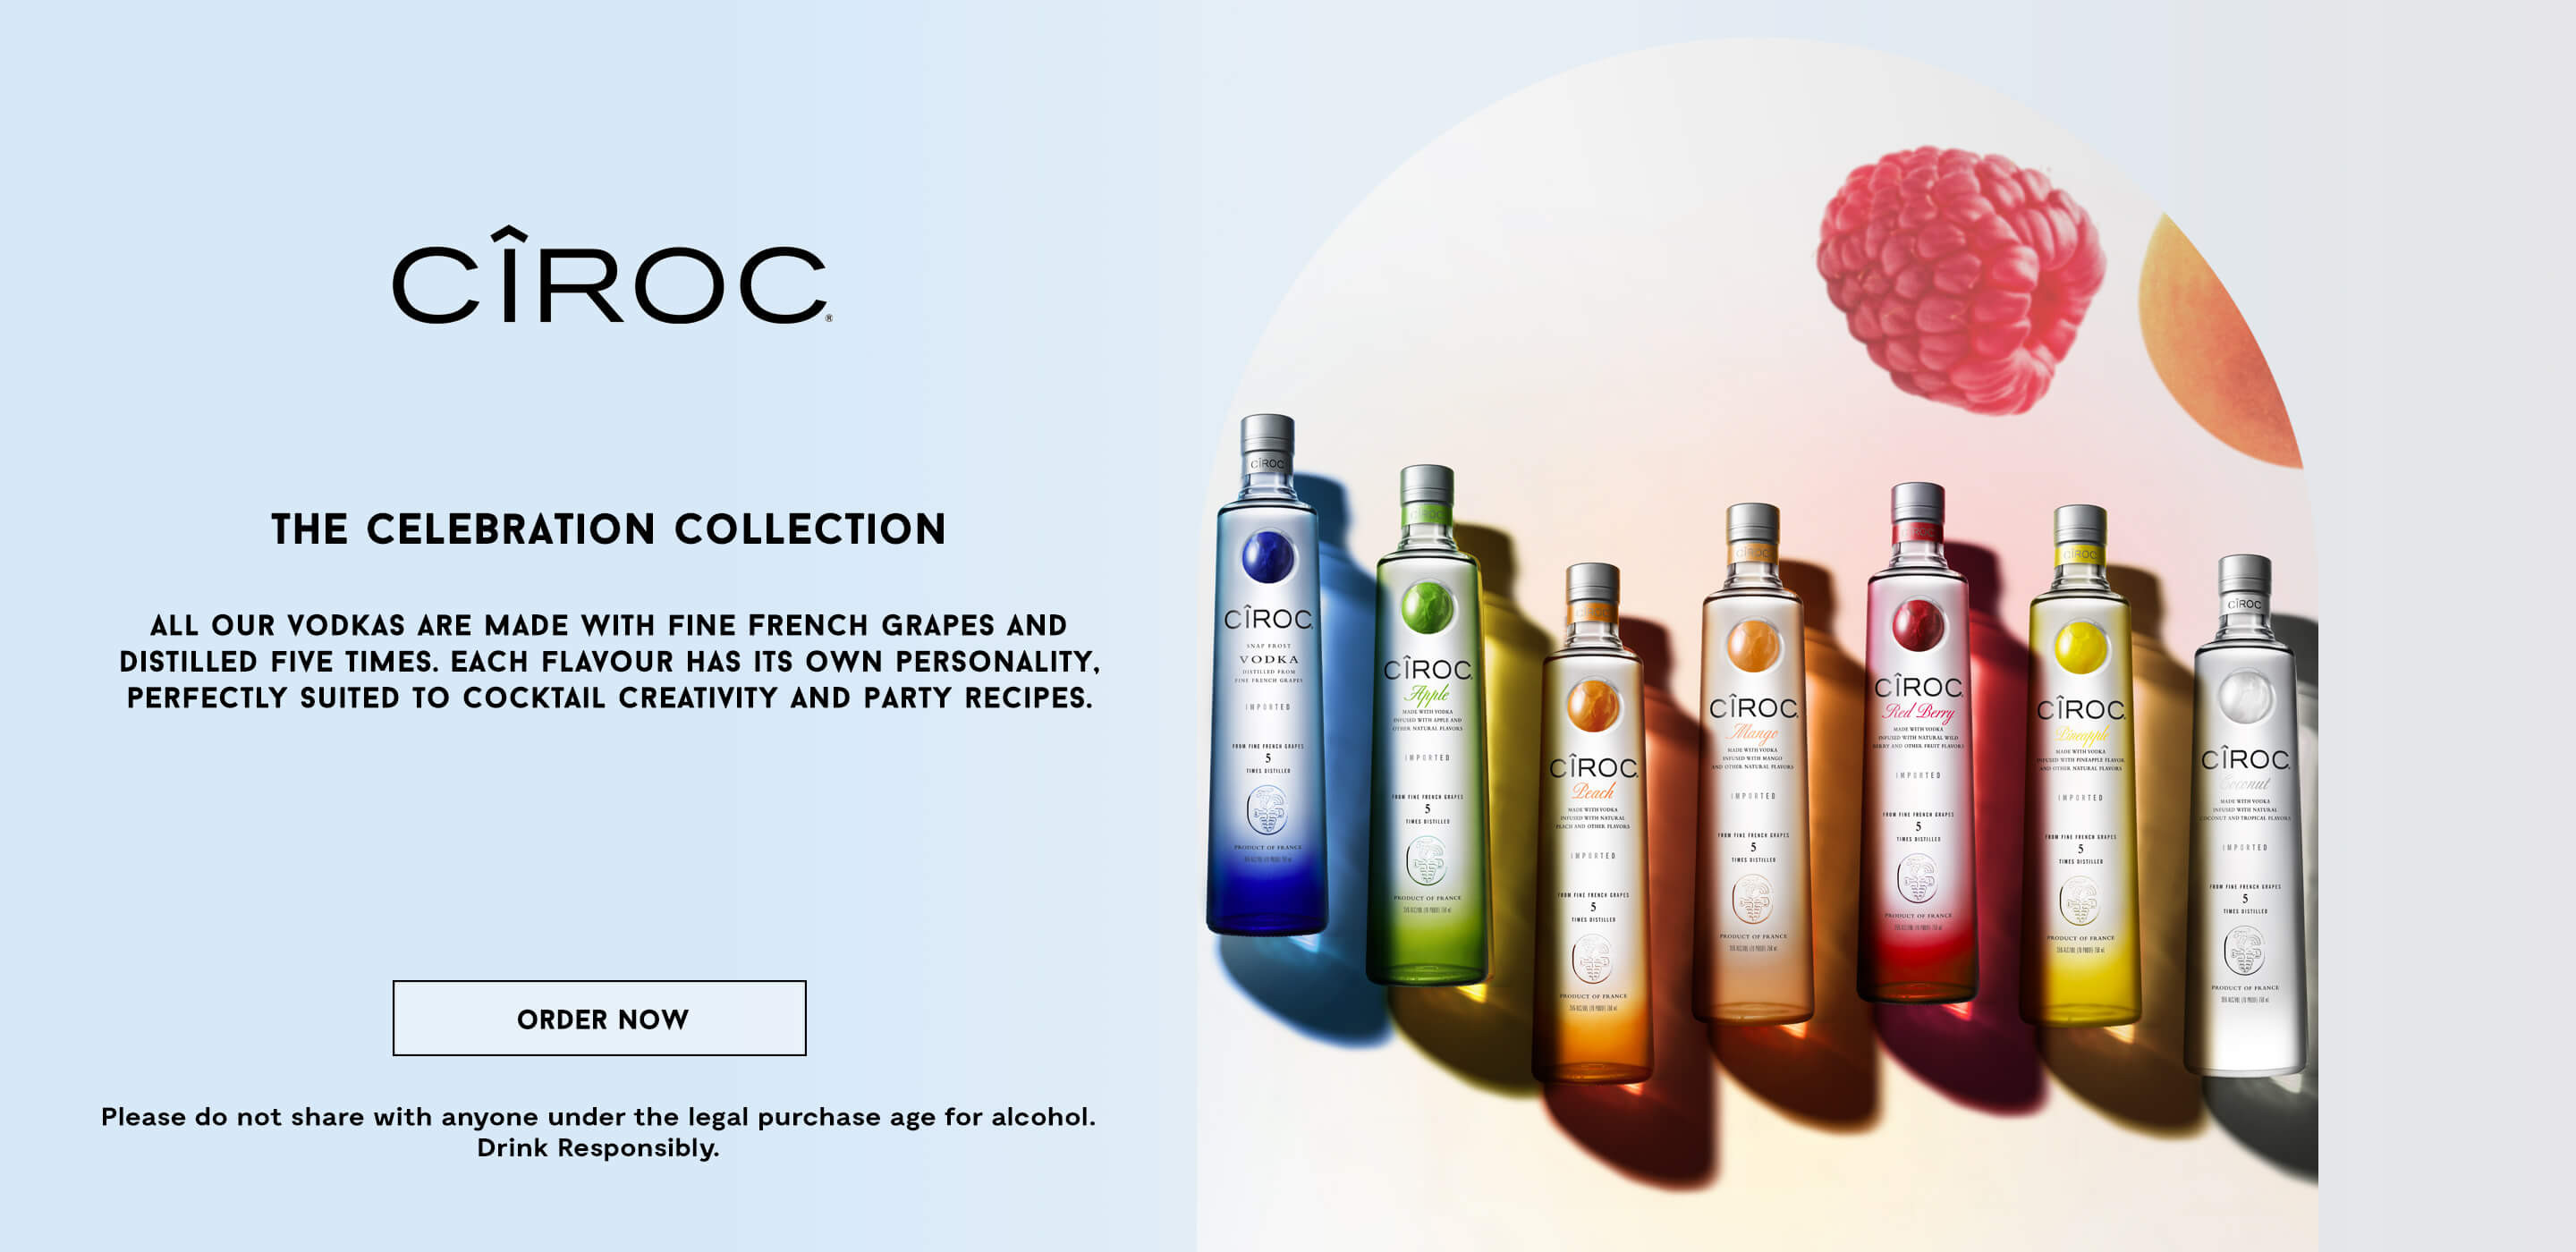 Banner of the new Cîroc vodka collection